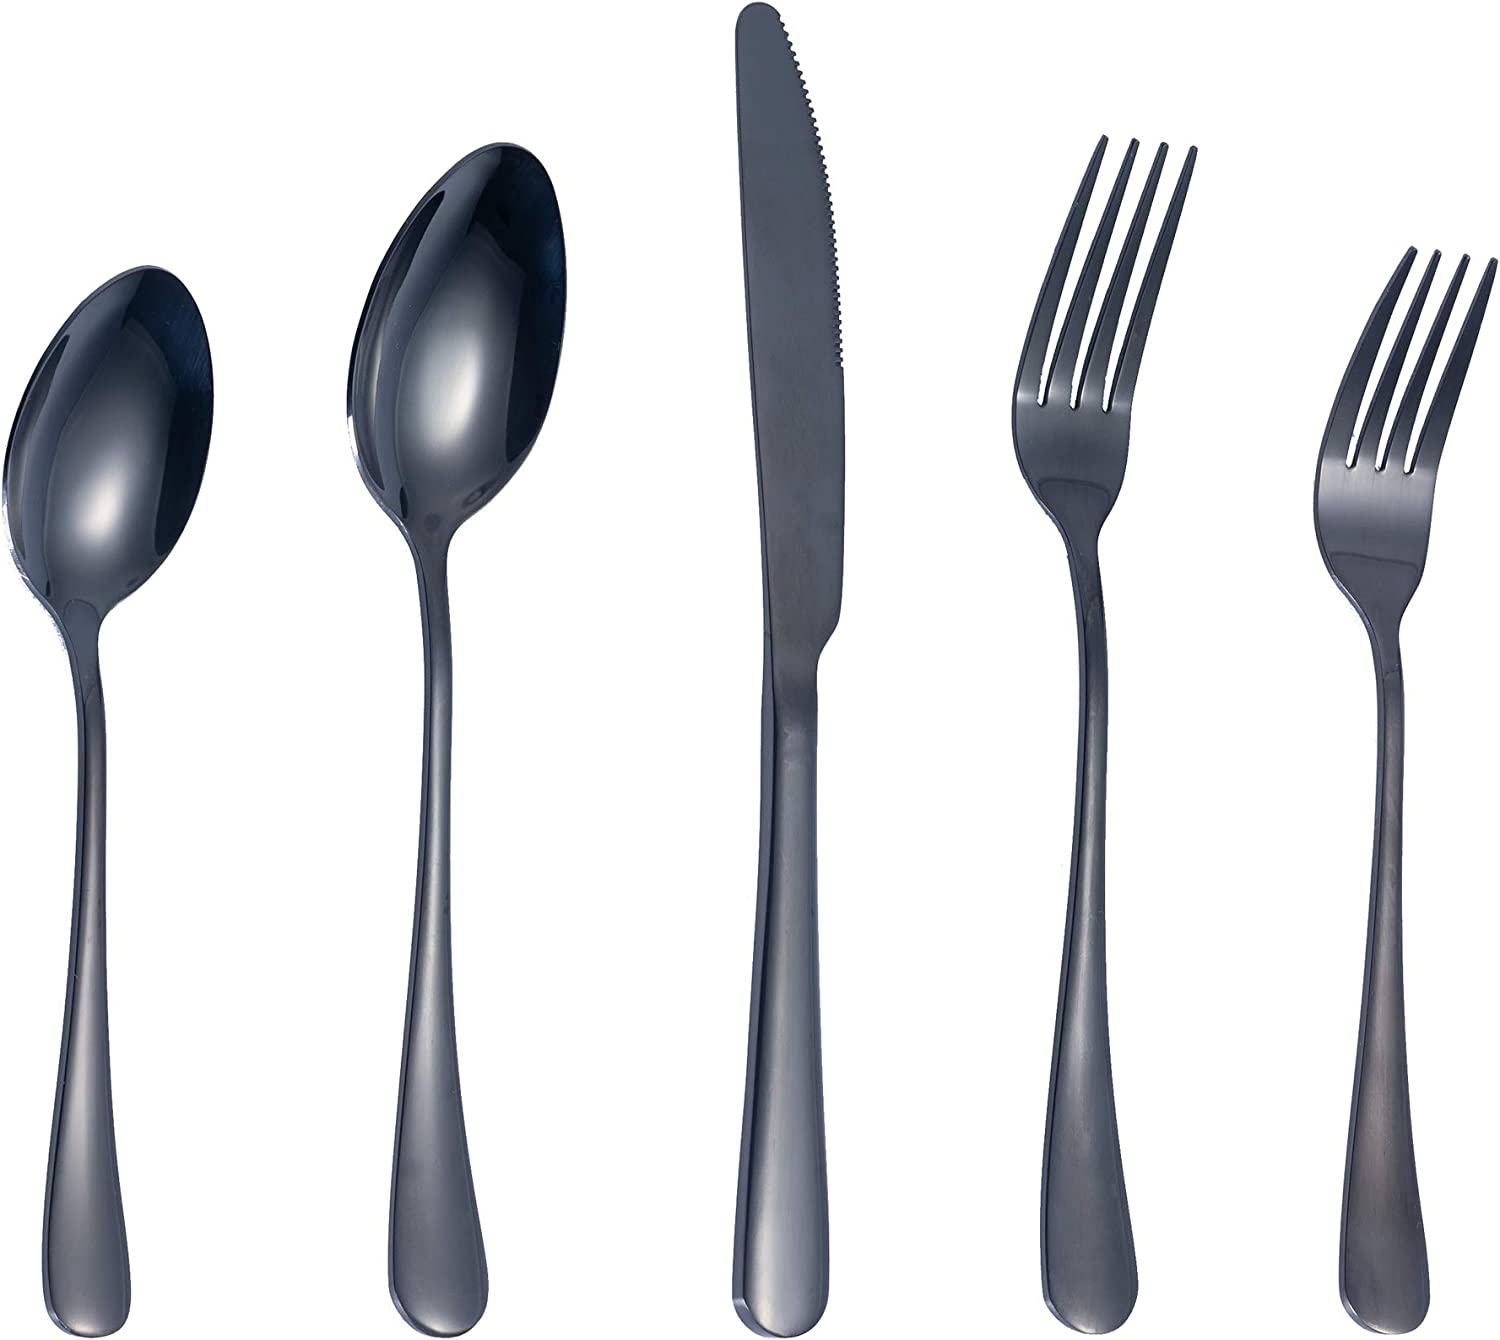 20-Piece Silverware Tableware sets Flatware Cutlery set for 4, Metal Stainless Steel, Include Knife/Fork/Spoon, Mirror Polished, Dishwasher Safe(Black)